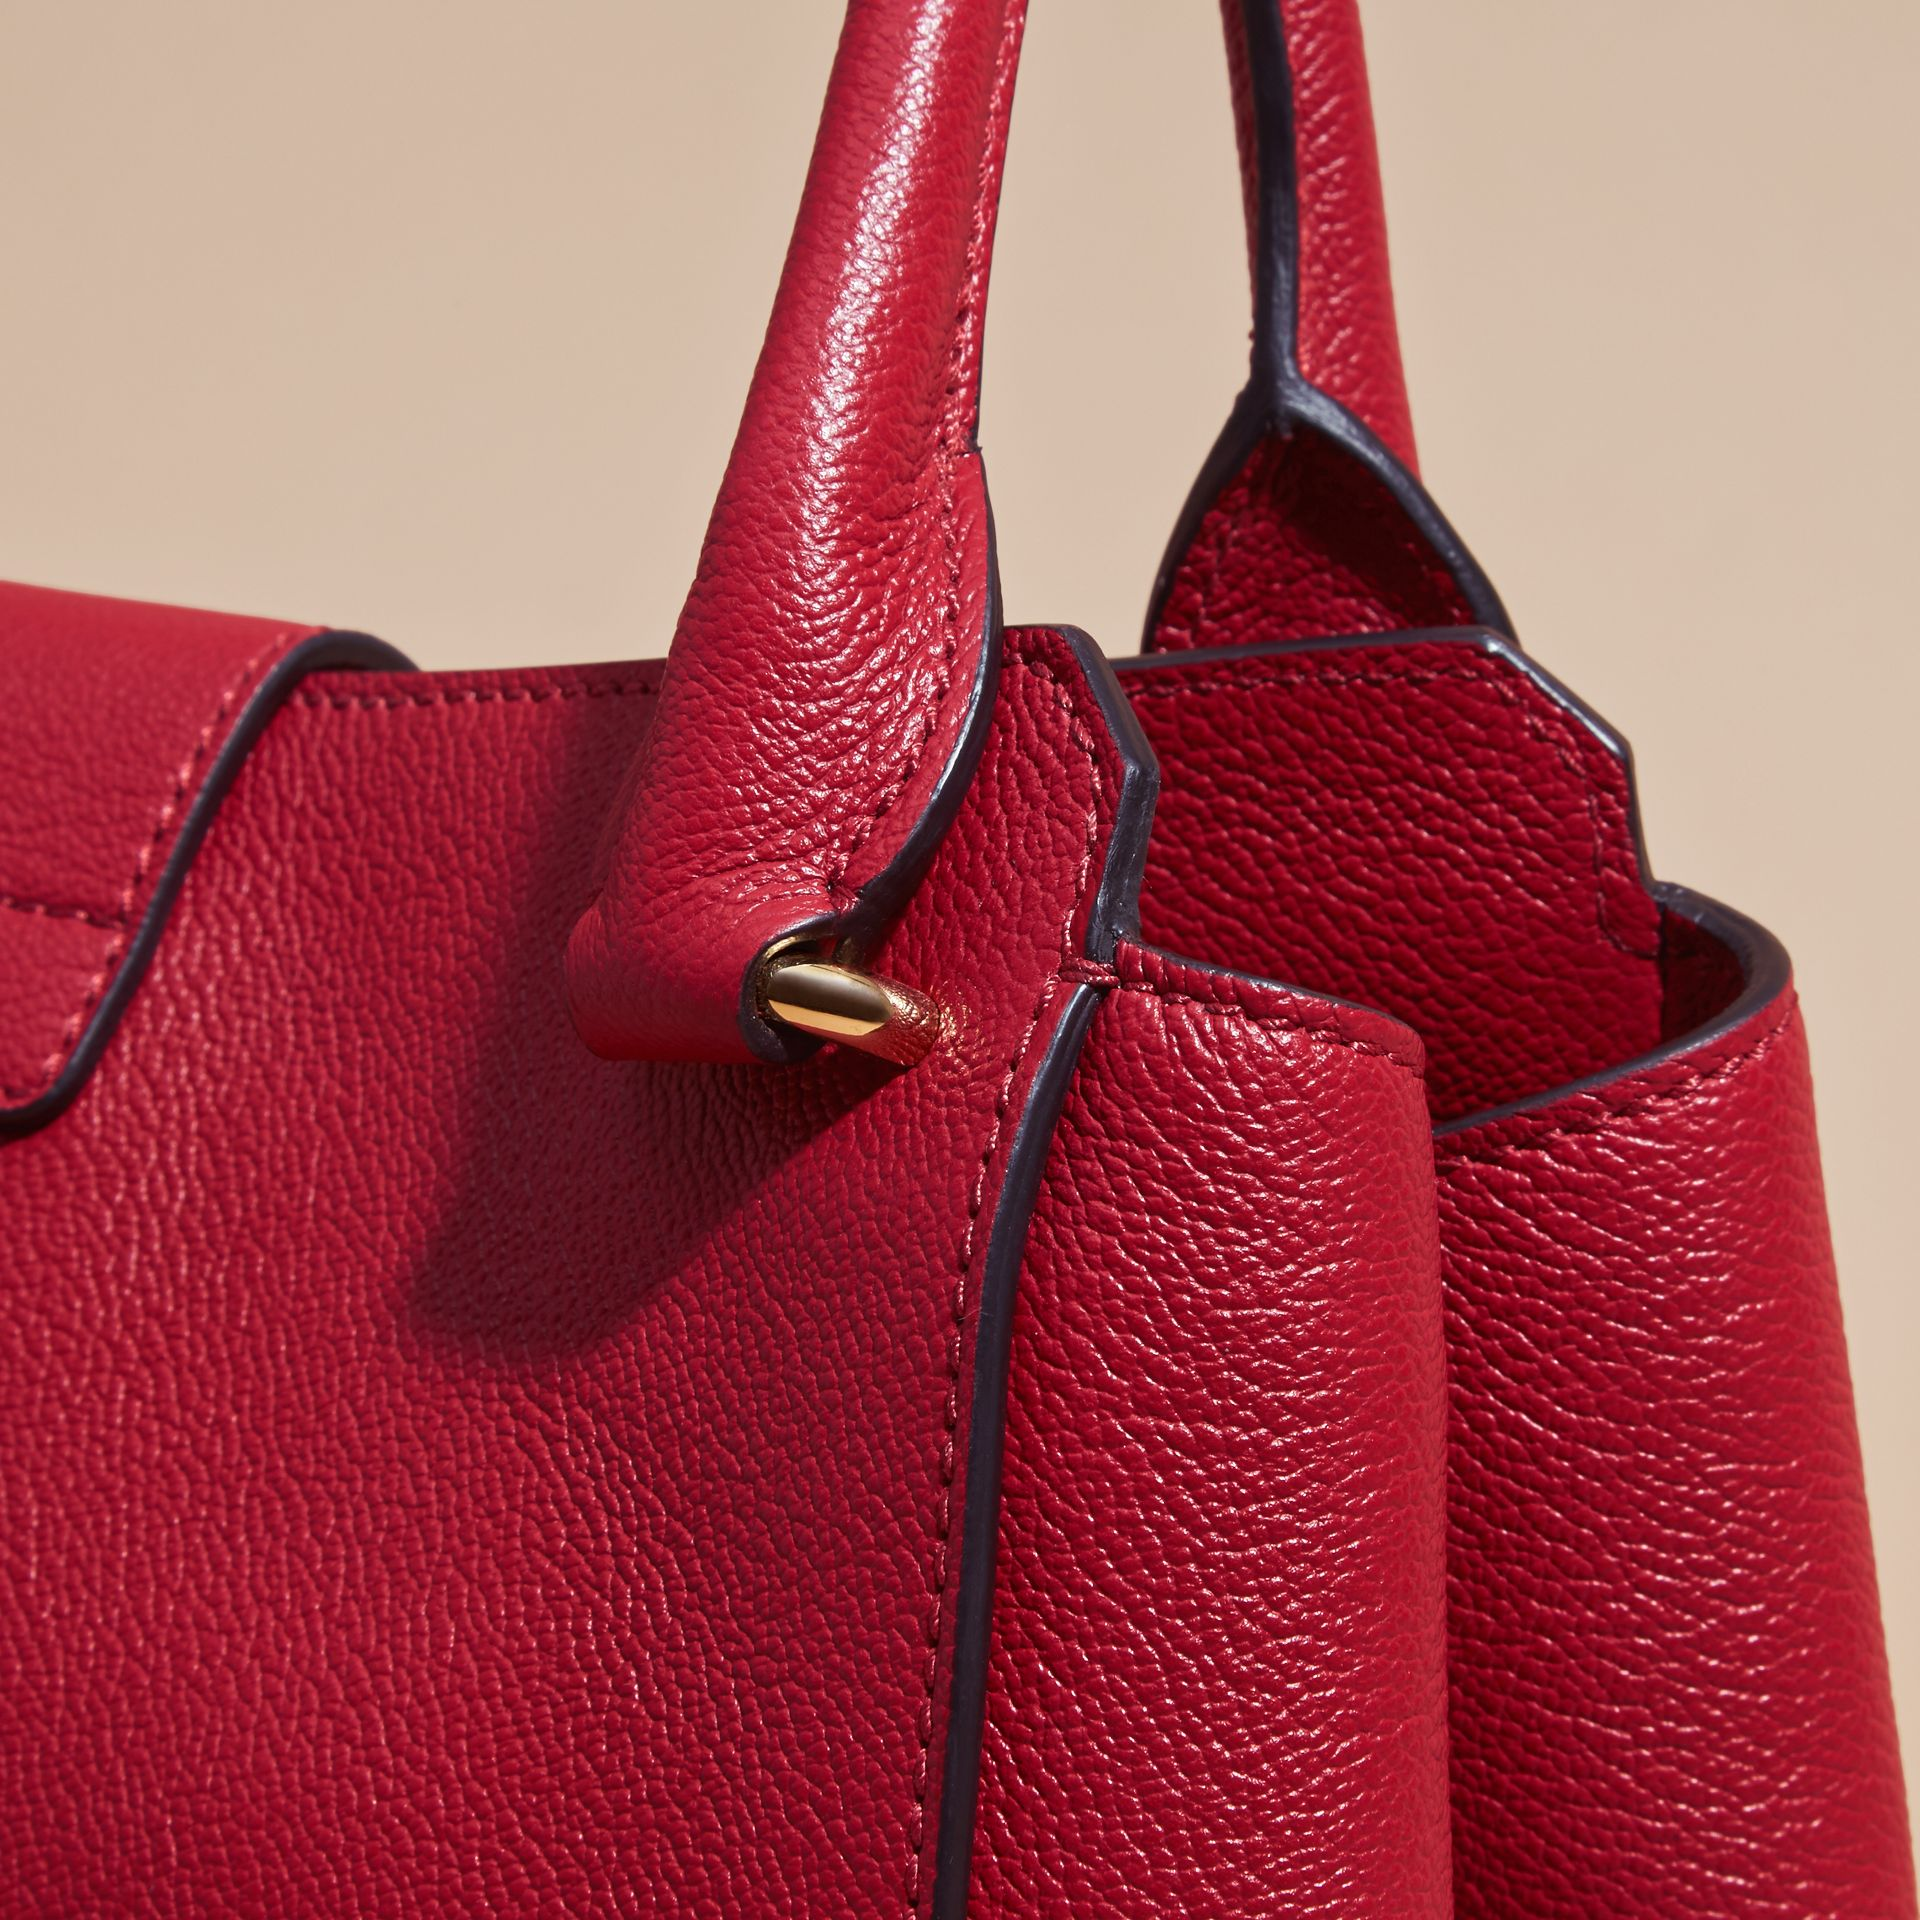 Parade red The Medium Buckle Tote in Grainy Leather Parade Red - gallery image 2